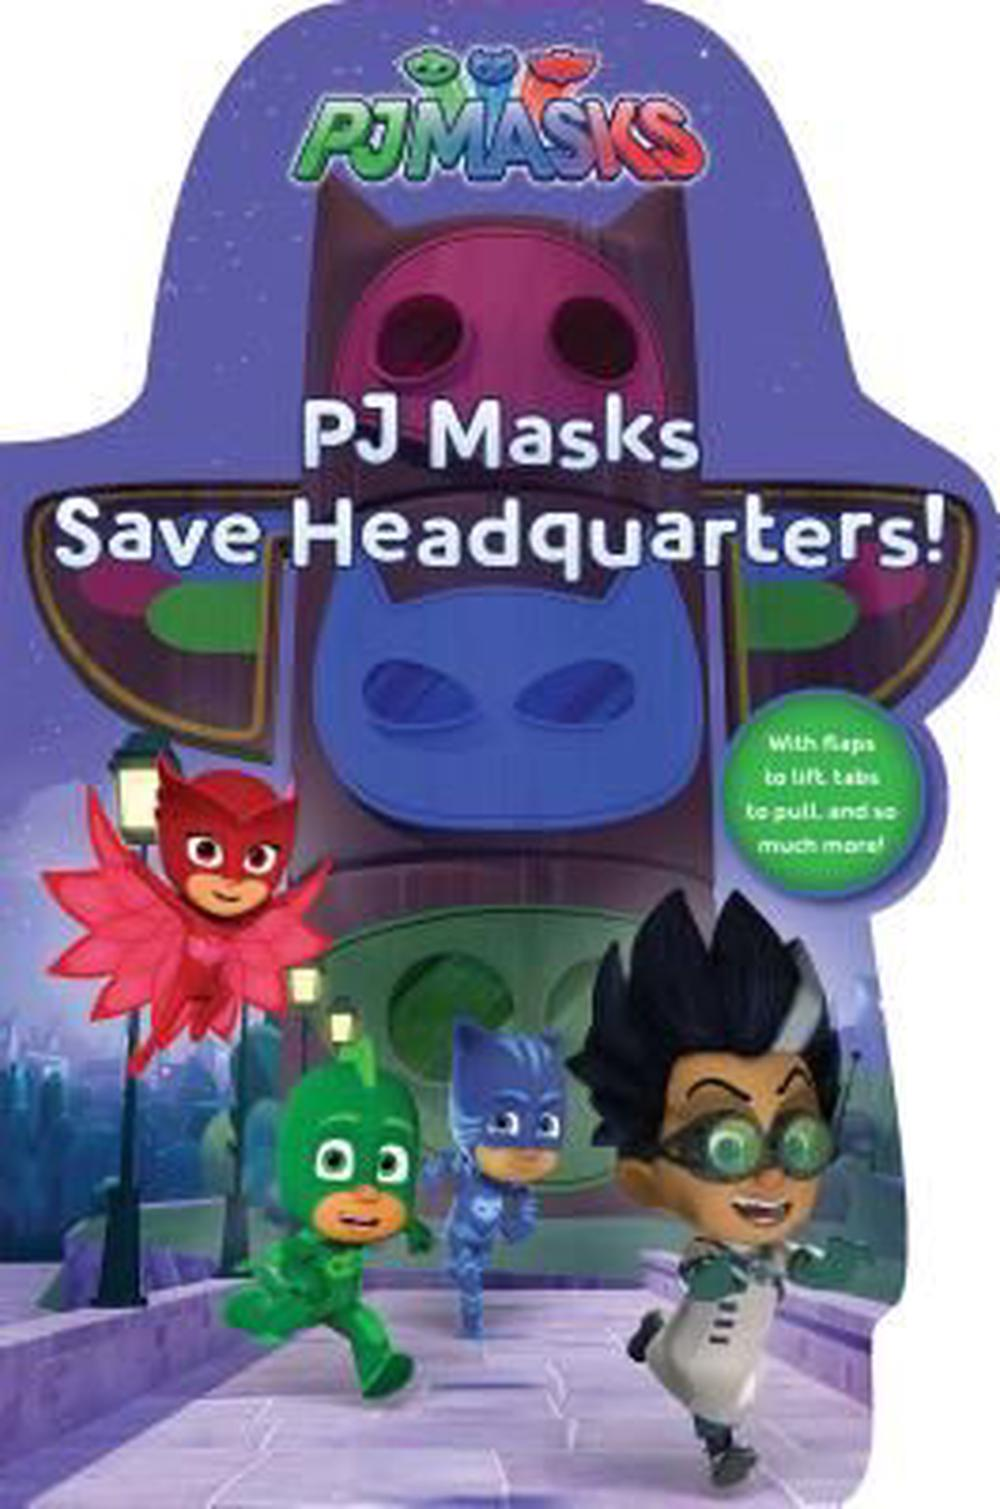 Pj Masks Save Headquarters! by Daphne Pendergrass,Style Guide, ISBN: 9781481495523